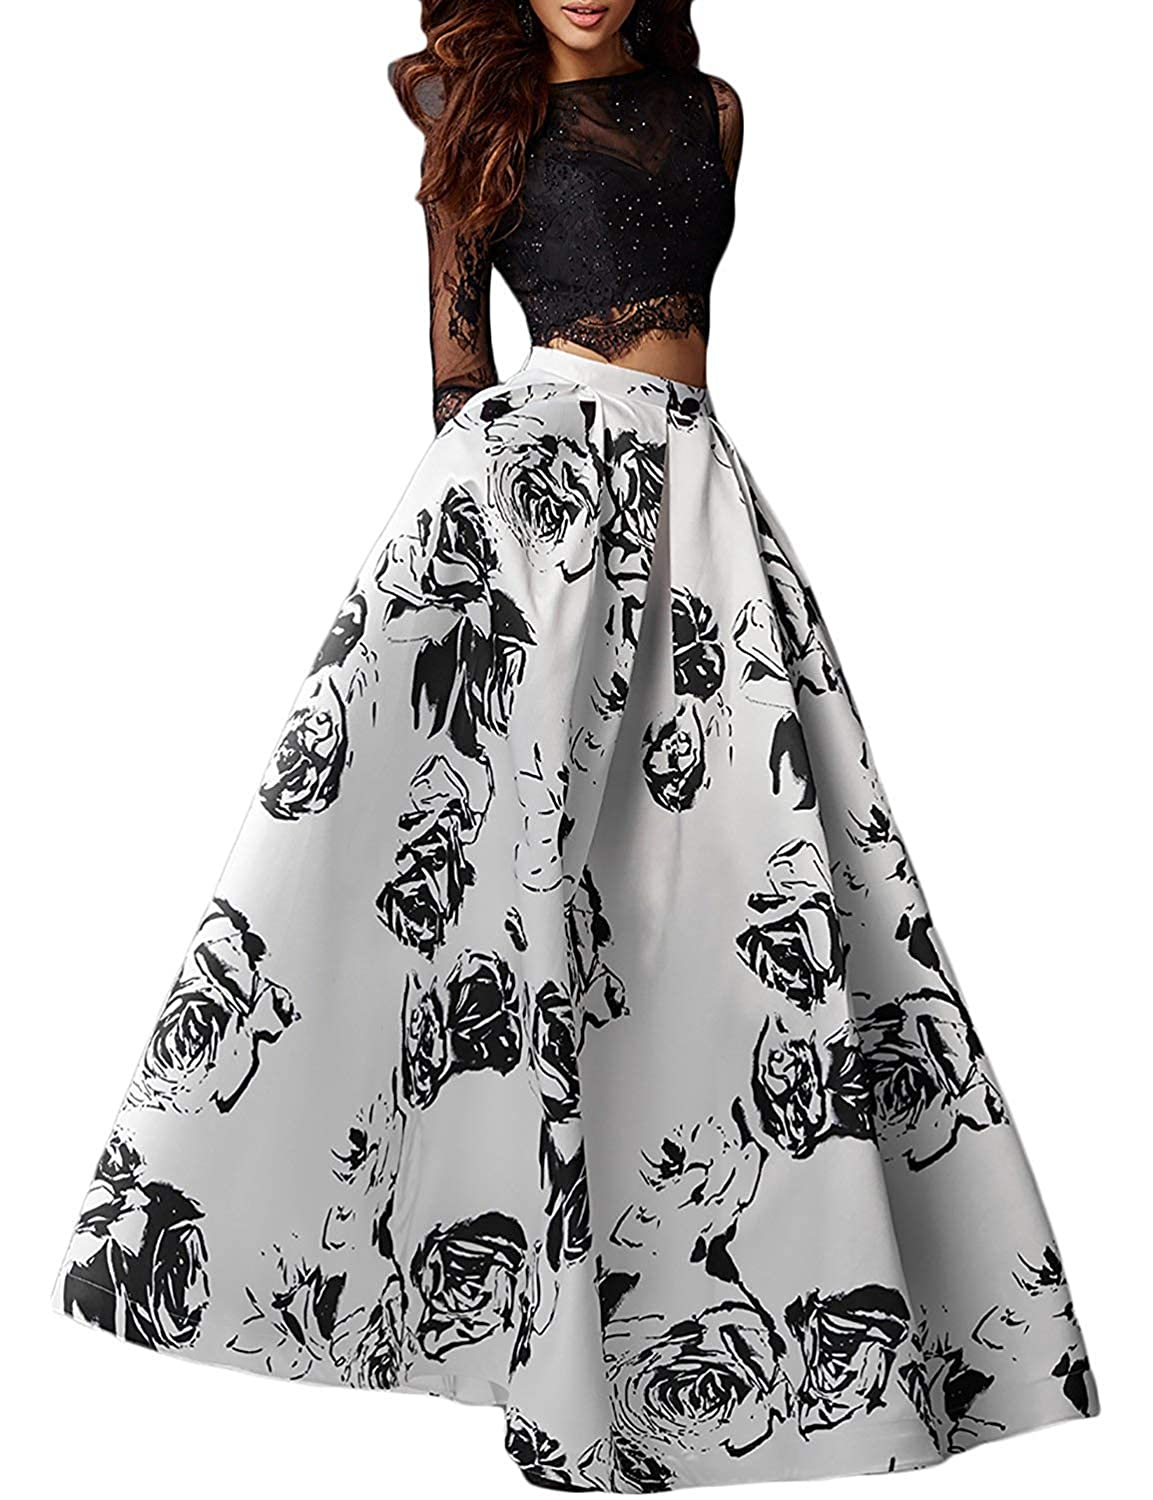 Alineblack YMSHA Womens Long Embroidery Lace Prom Party Dress Backless Formal Evening Gown 28PM